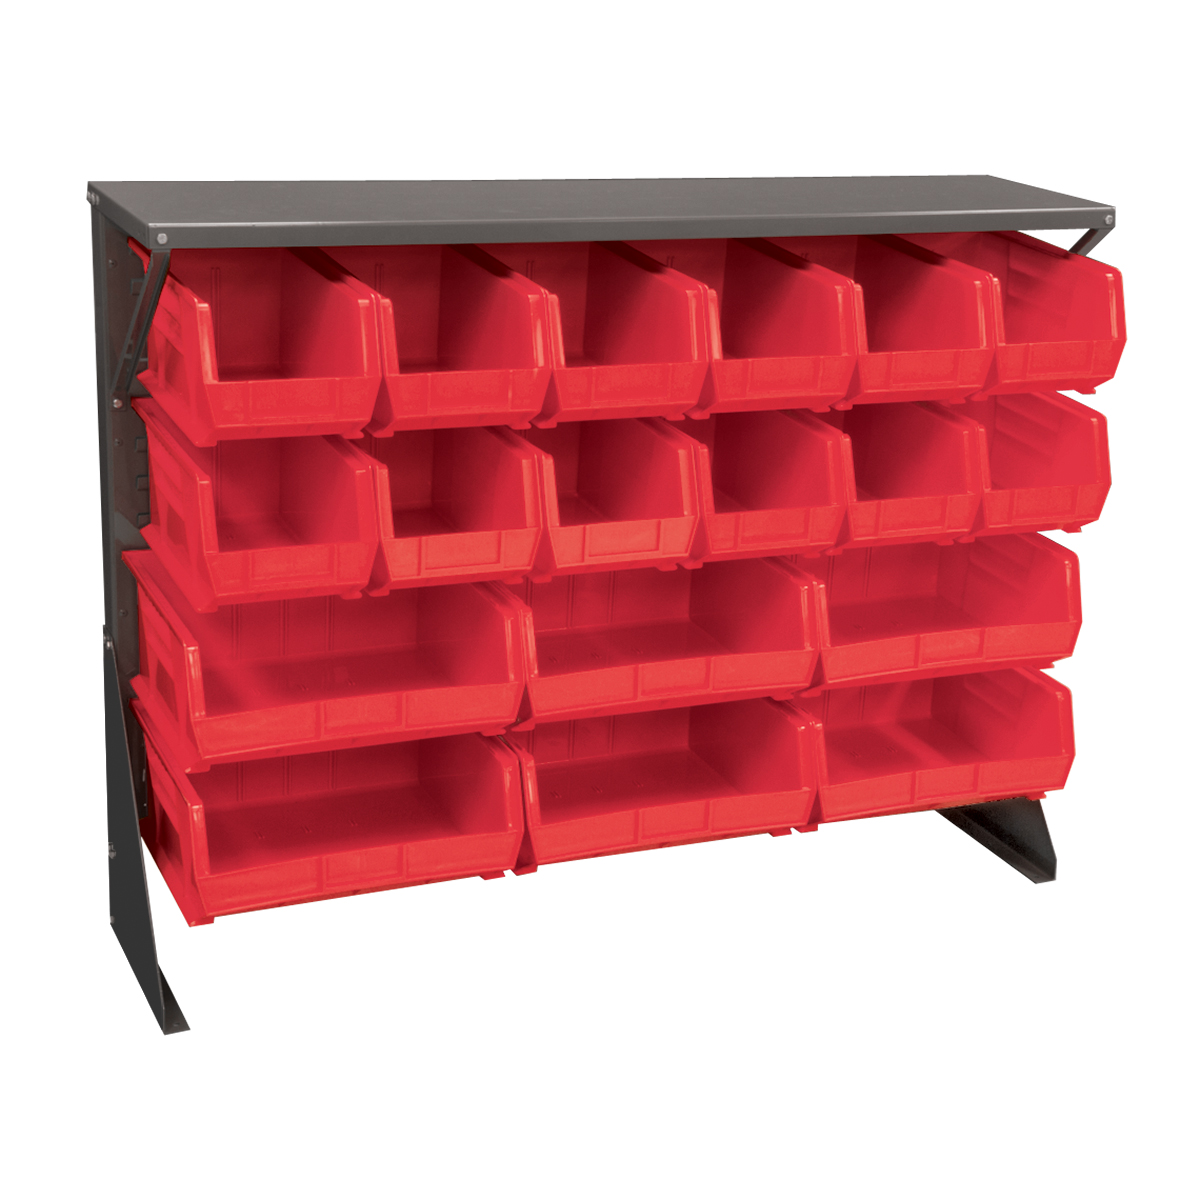 Item DISCONTINUED by Manufacturer.  Low Profile Floor Rack, 1-Sided, Shelf w/ 18 AkroBins, Gray/Red (30650GYASSTR).  This item sold in carton quantities of 1.